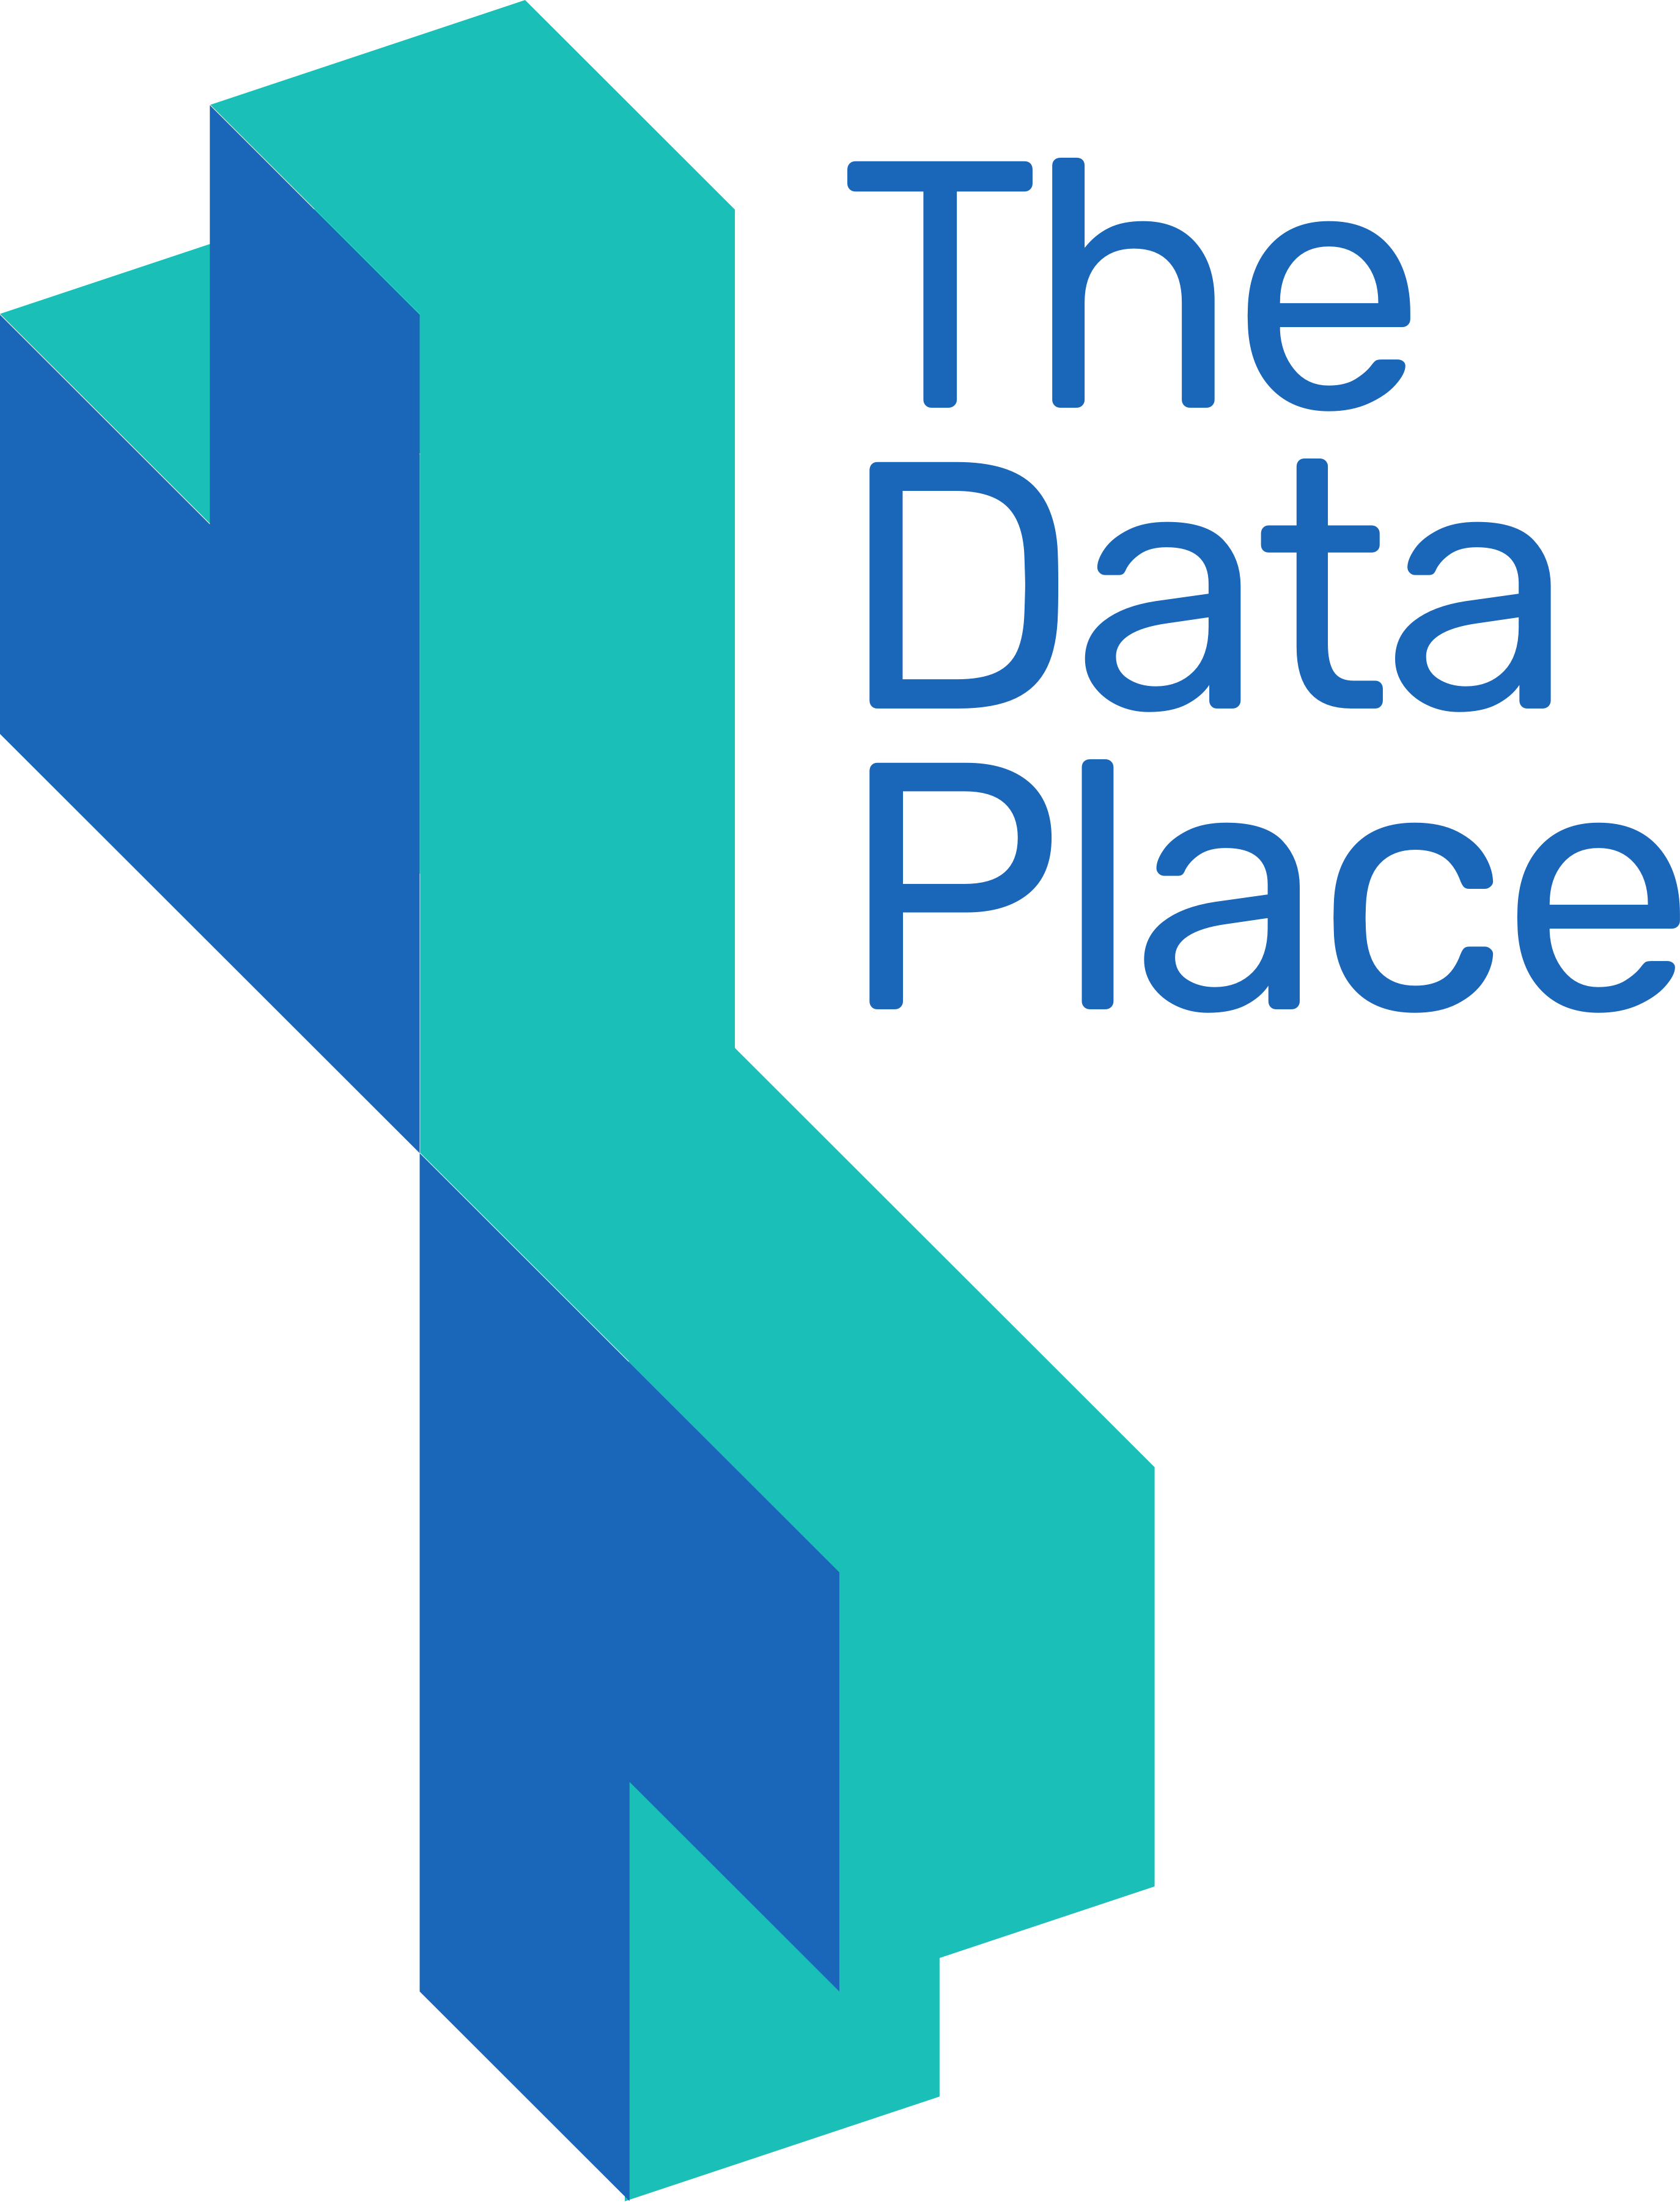 https://thedata.place/